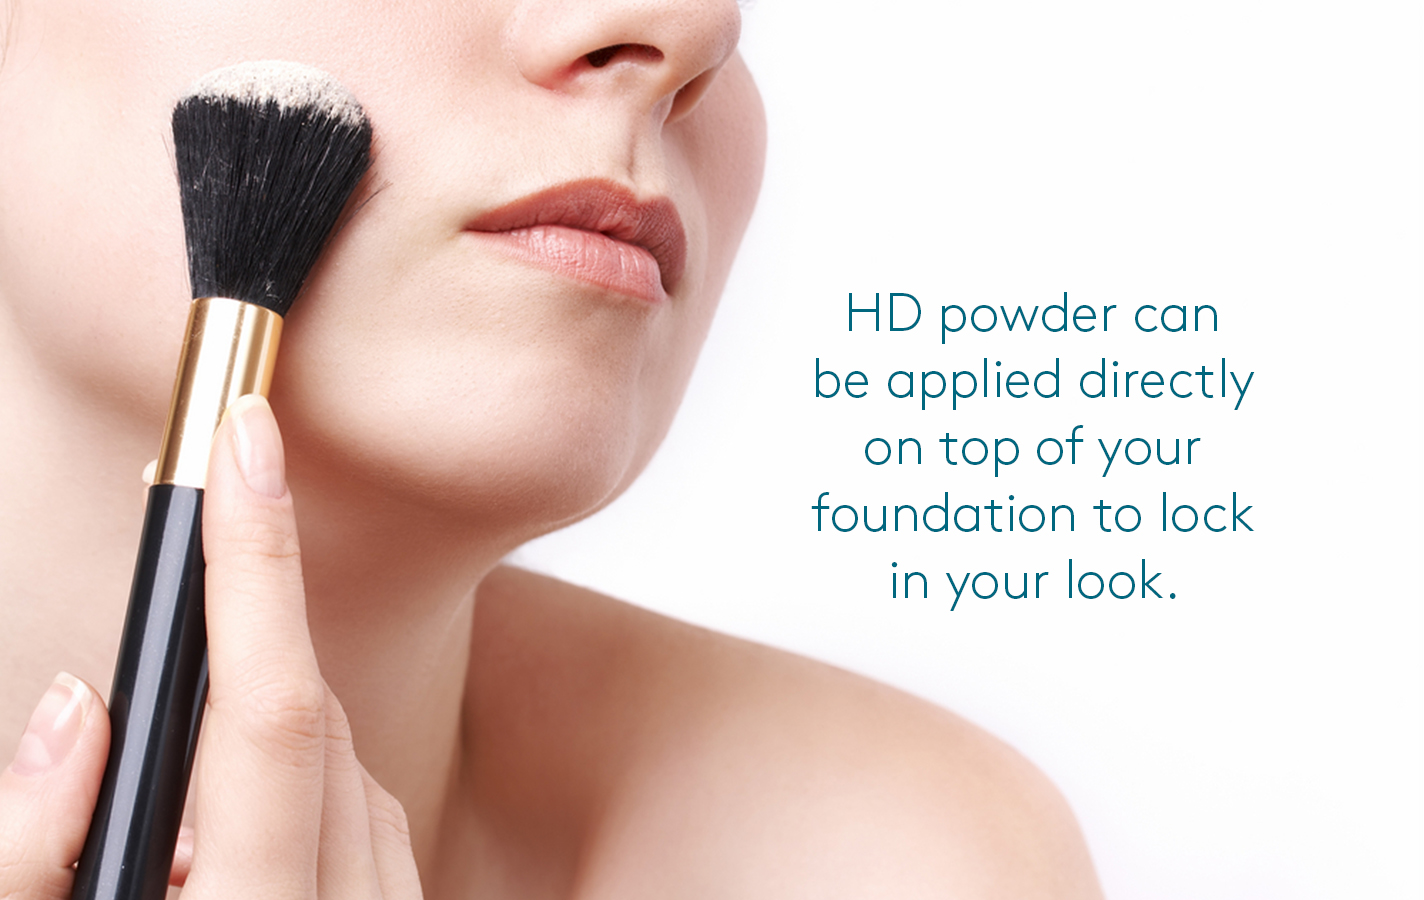 How to apply HD setting powder